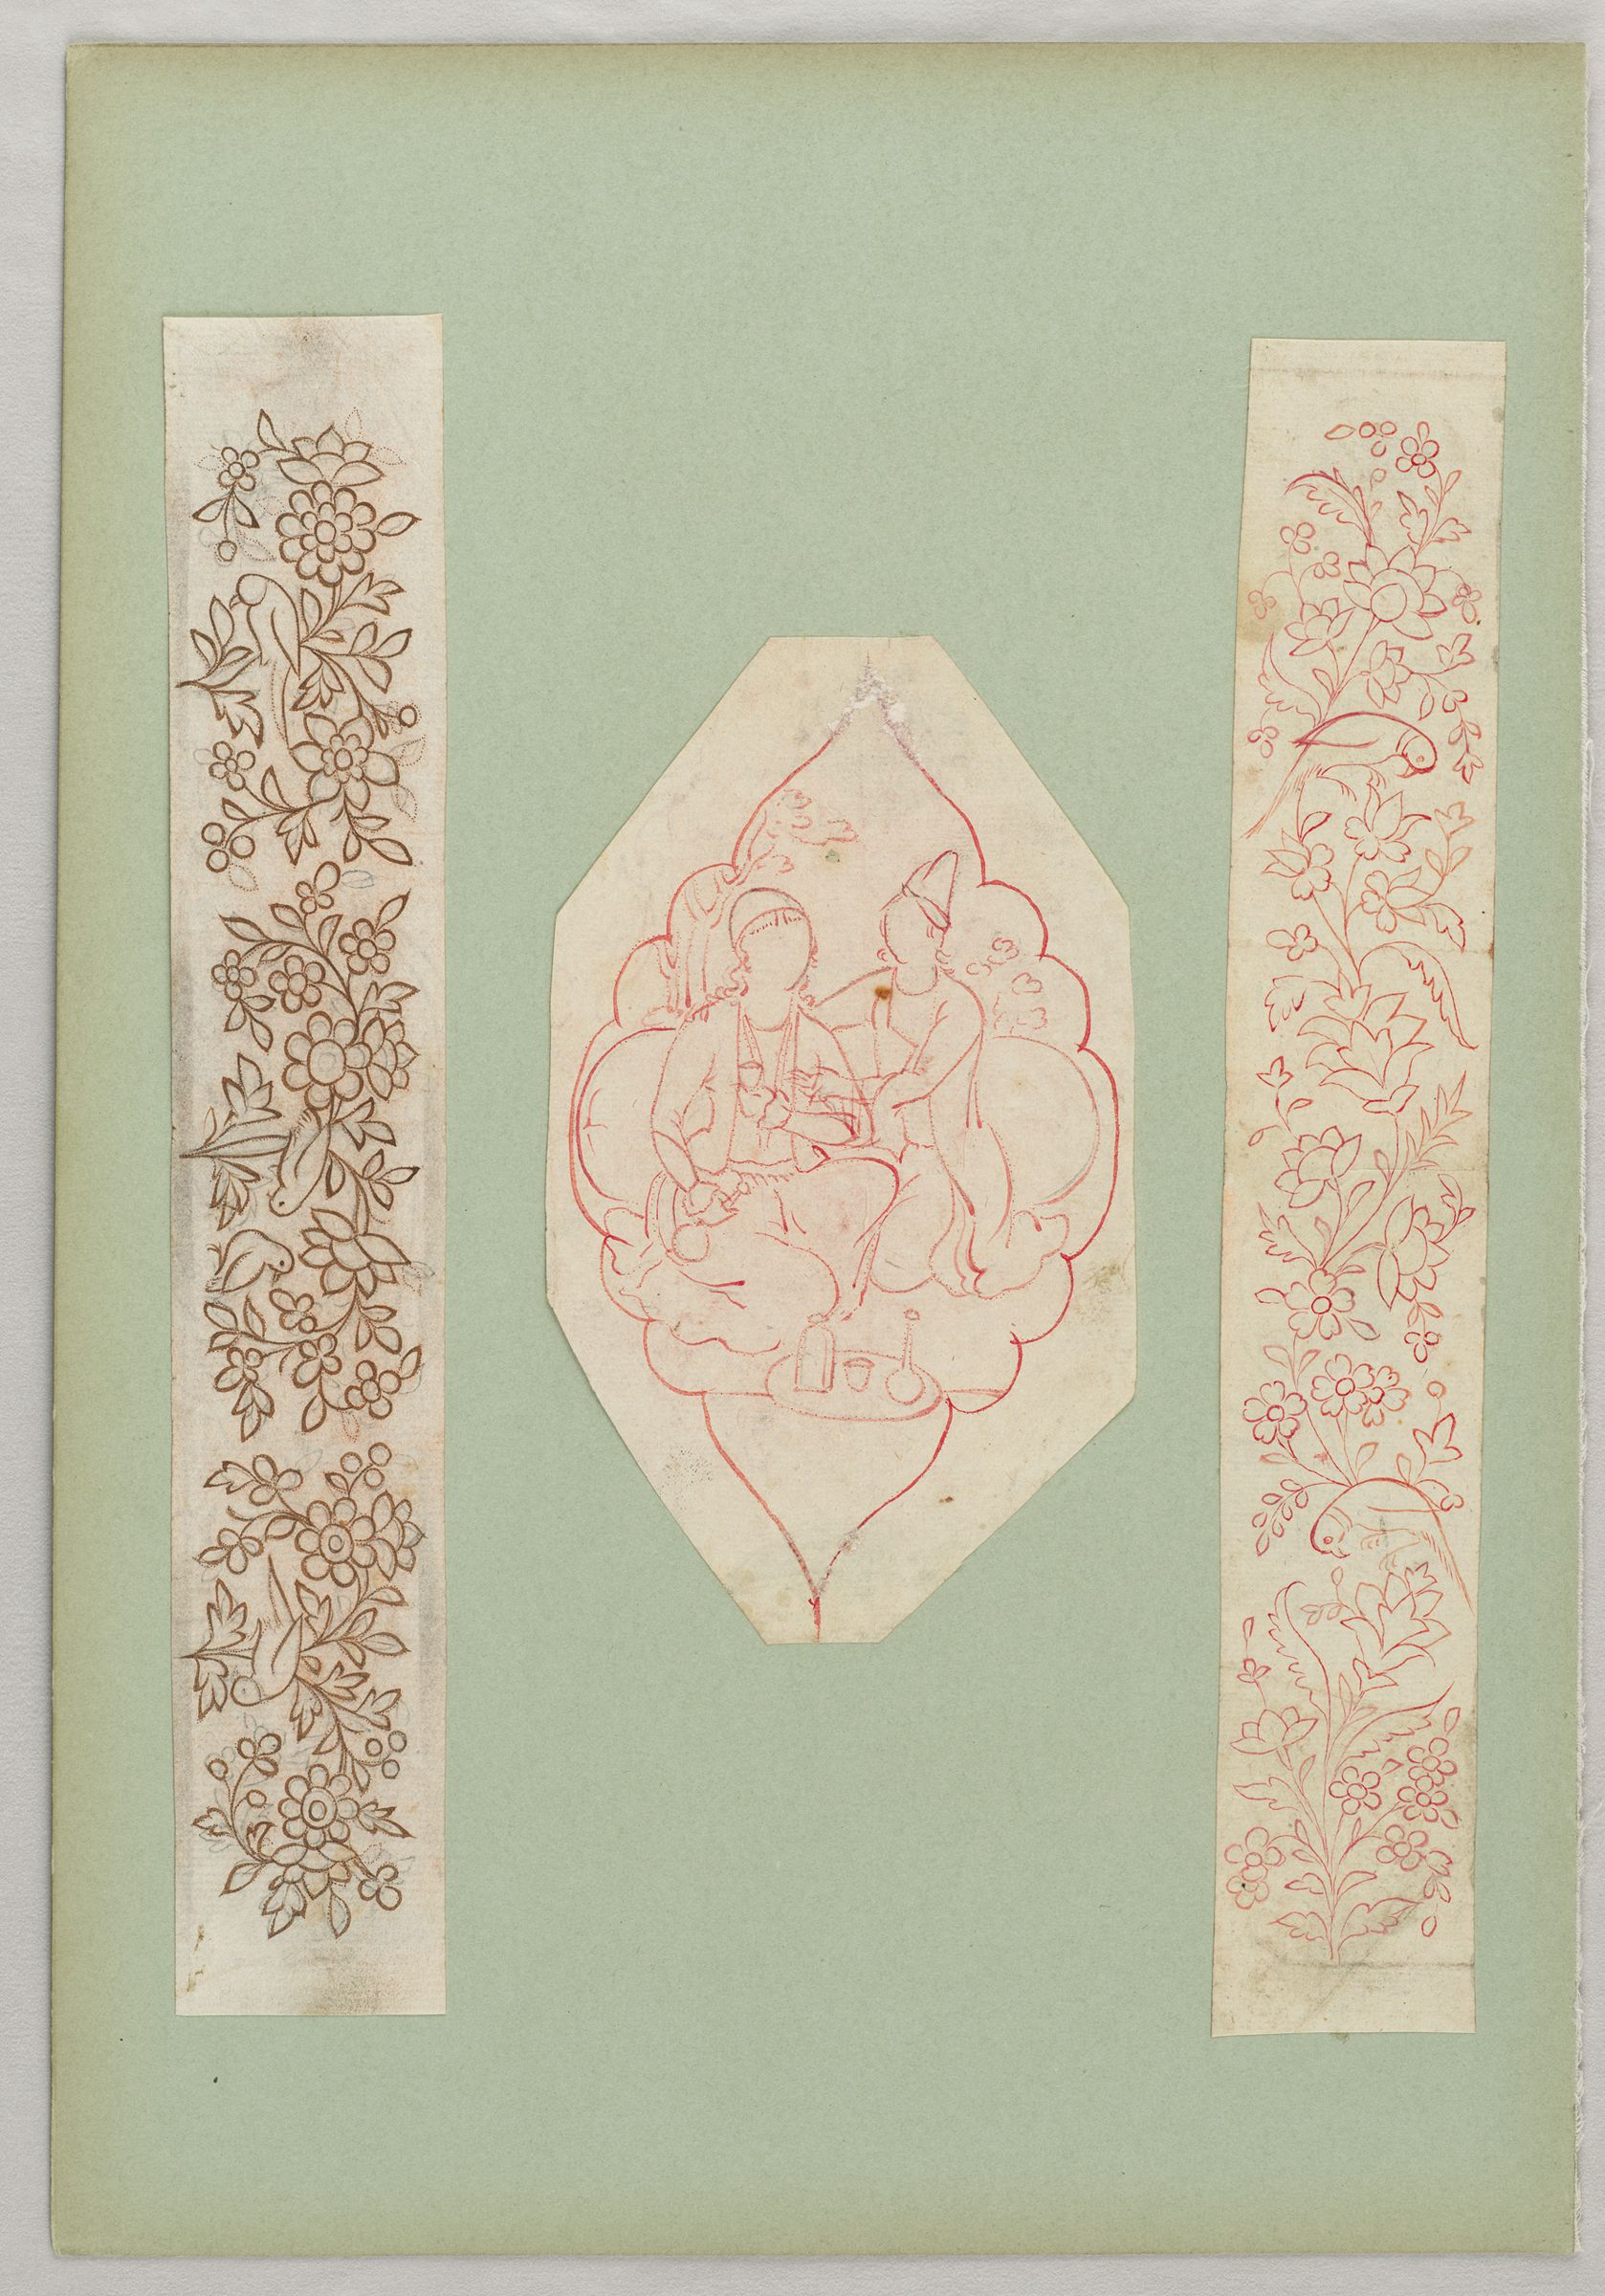 Folio 23 From An Album Of Drawings And Paintings: Three Sheets: Bird And Flower Designs For A Penbox; Polylobed Cartouche Enclosing Couple (Recto); Blank Page (Verso)